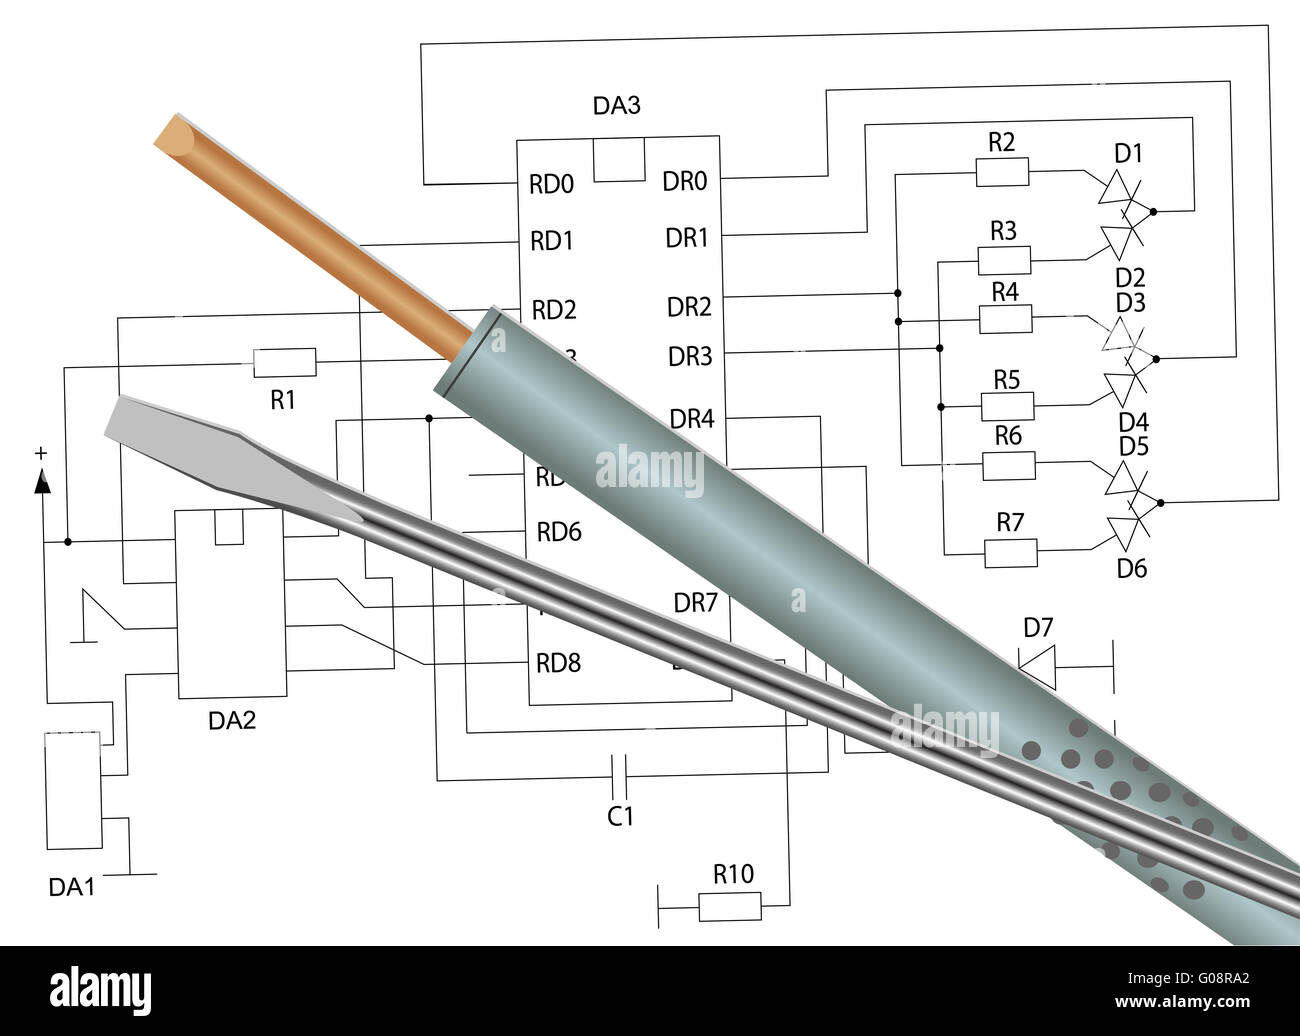 Soldering iron, screwdriver and electronic circuit - Stock Image